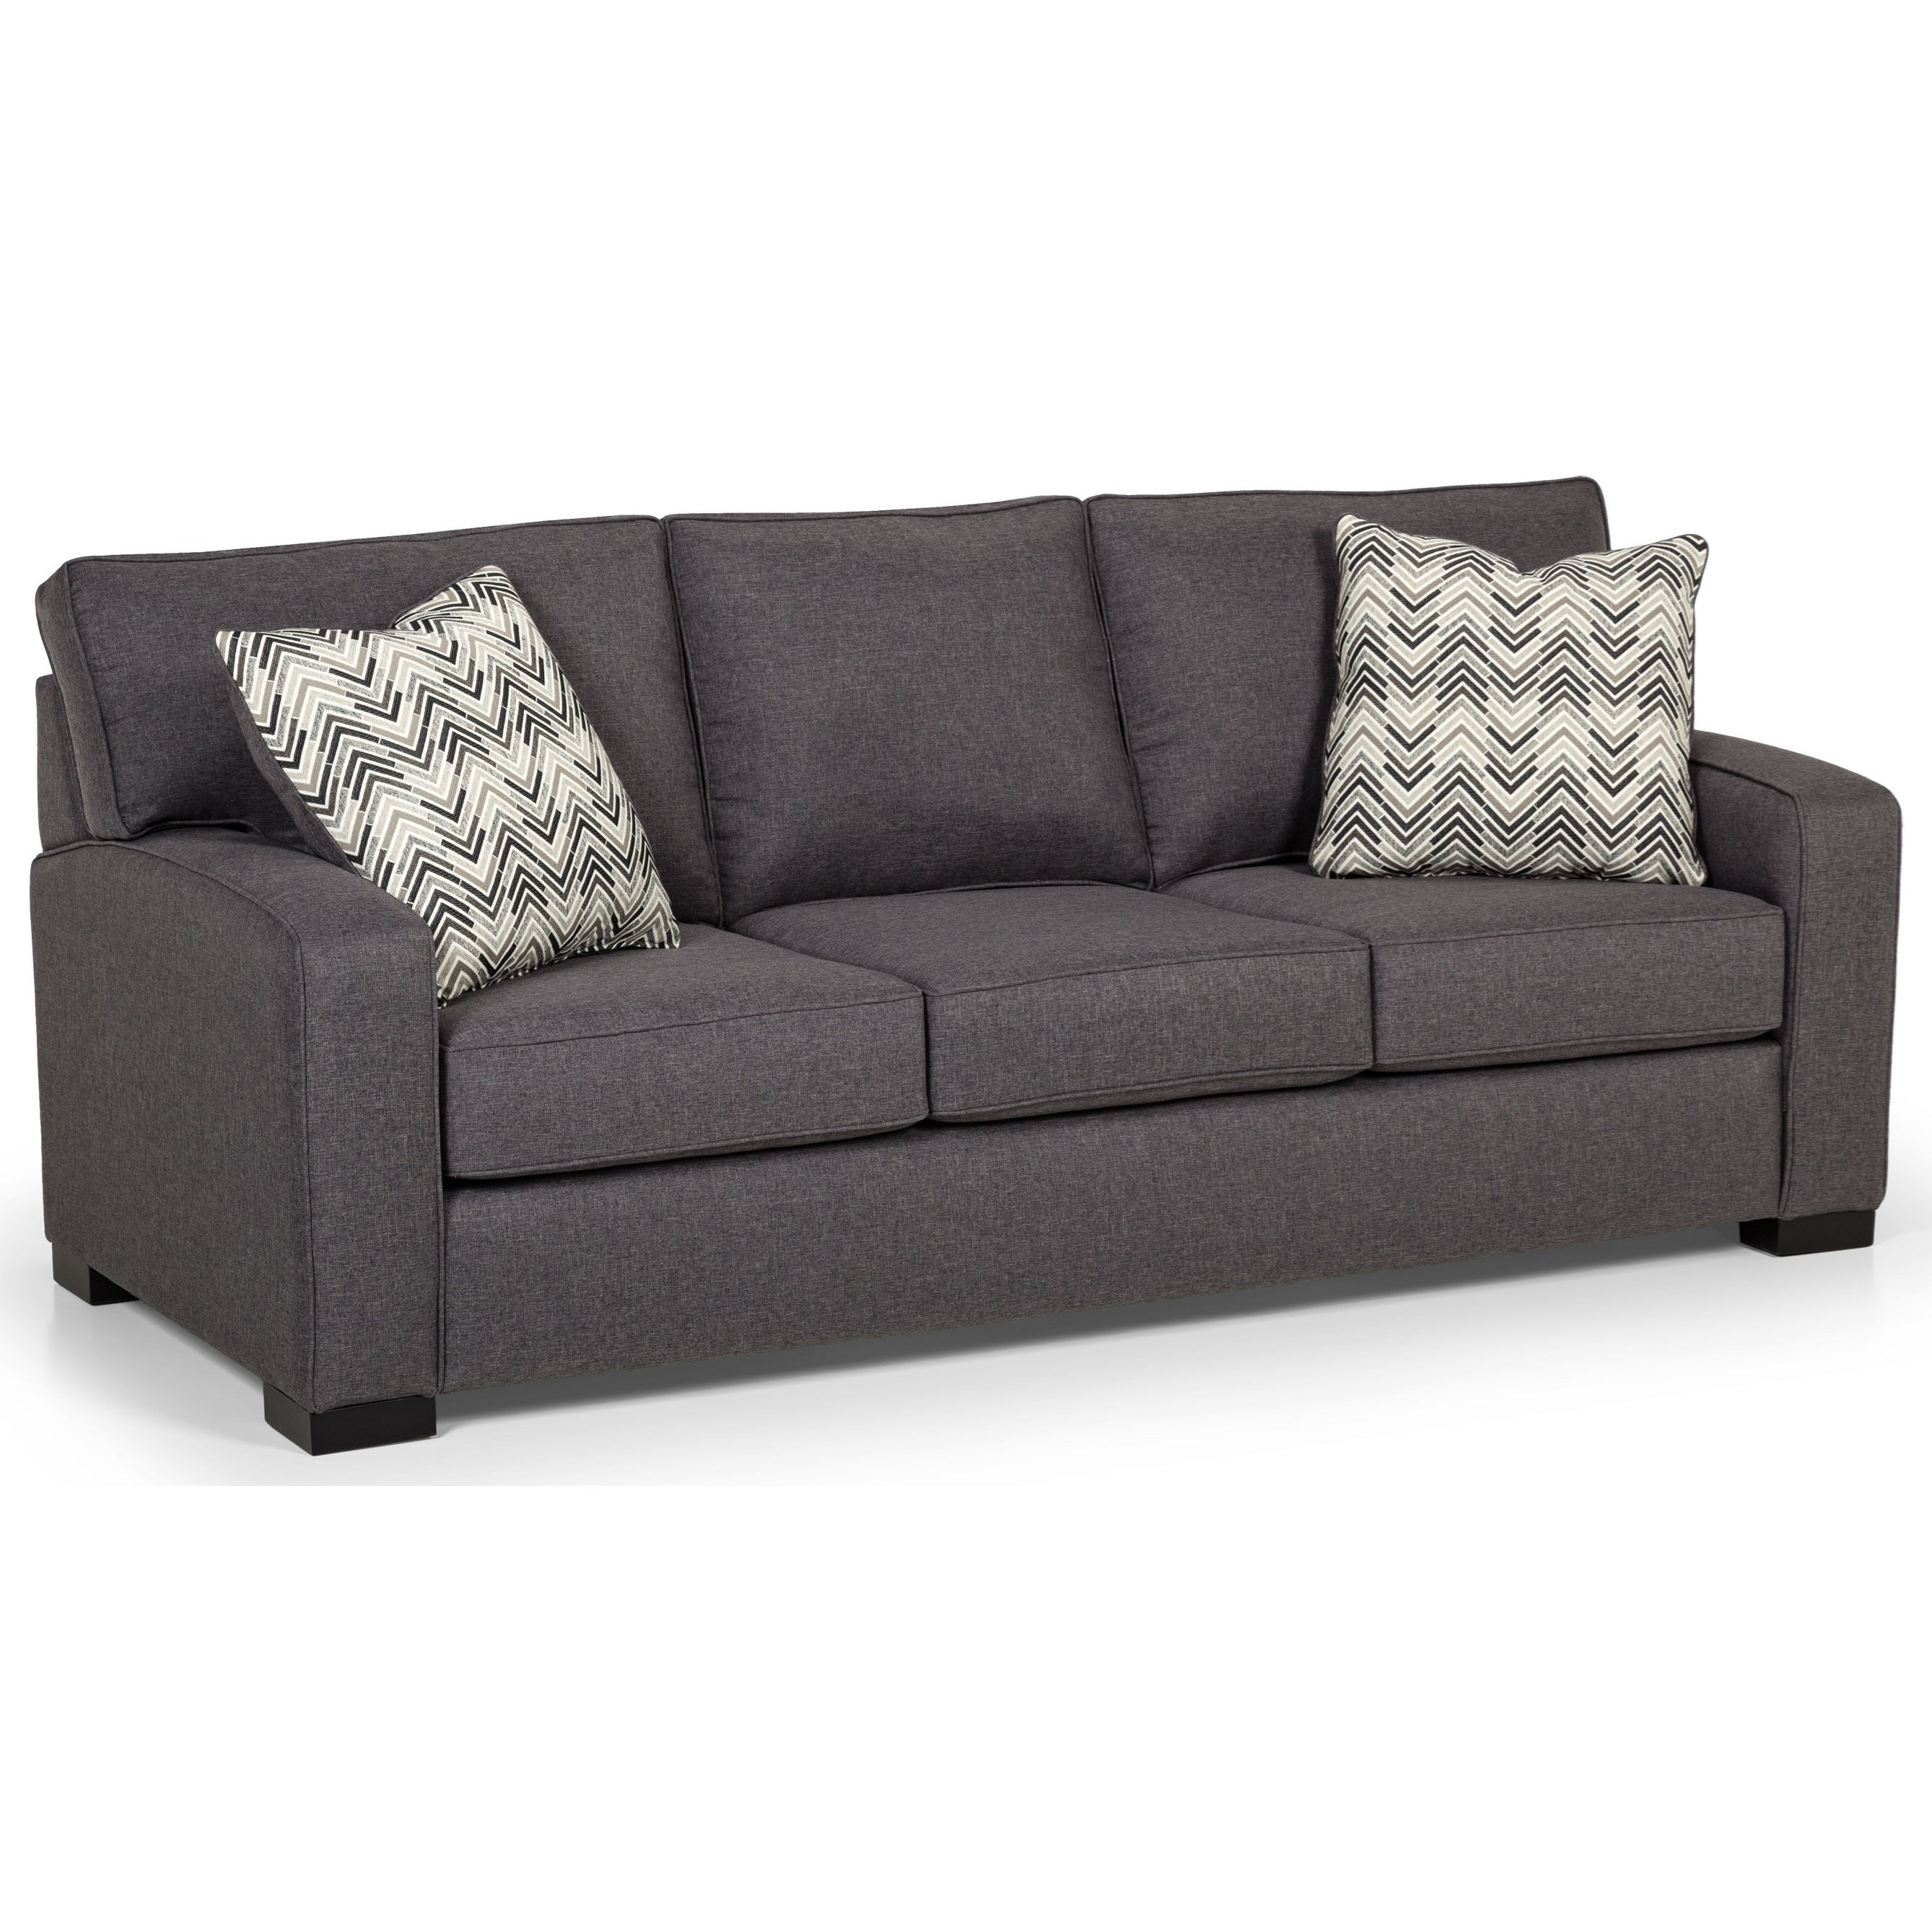 Stanton 375 Contemporary Sofa With Arching Track Arms Rife 39 S Home Furniture Sofas